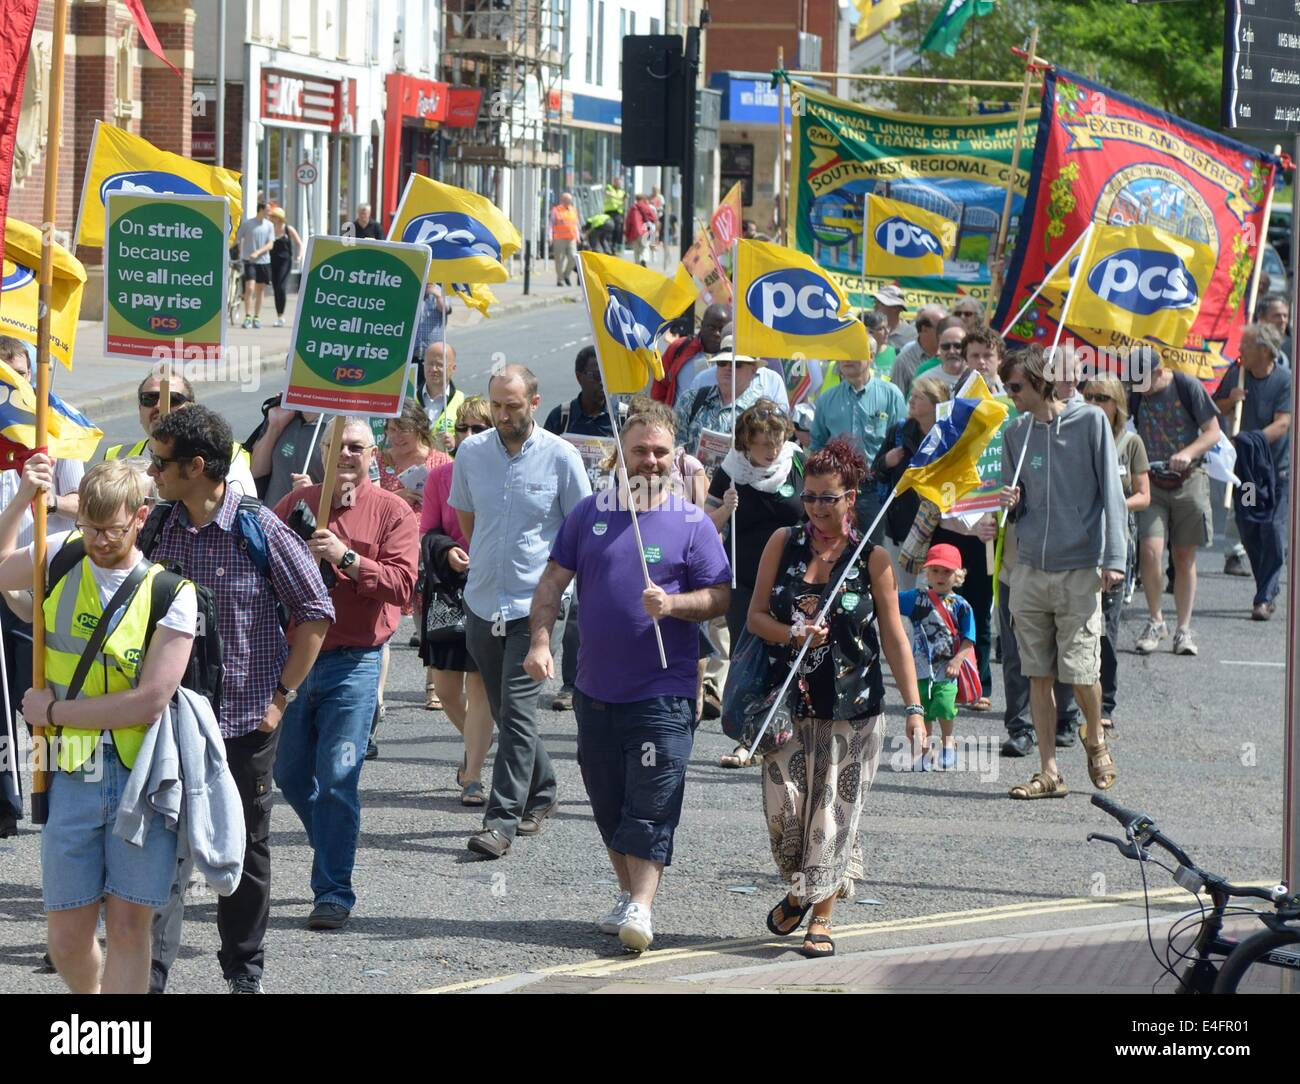 Exeter, Devon, UK. 10th July 2014. Public sector unions march and rally in Exeter as part of a national strike for - Stock Image